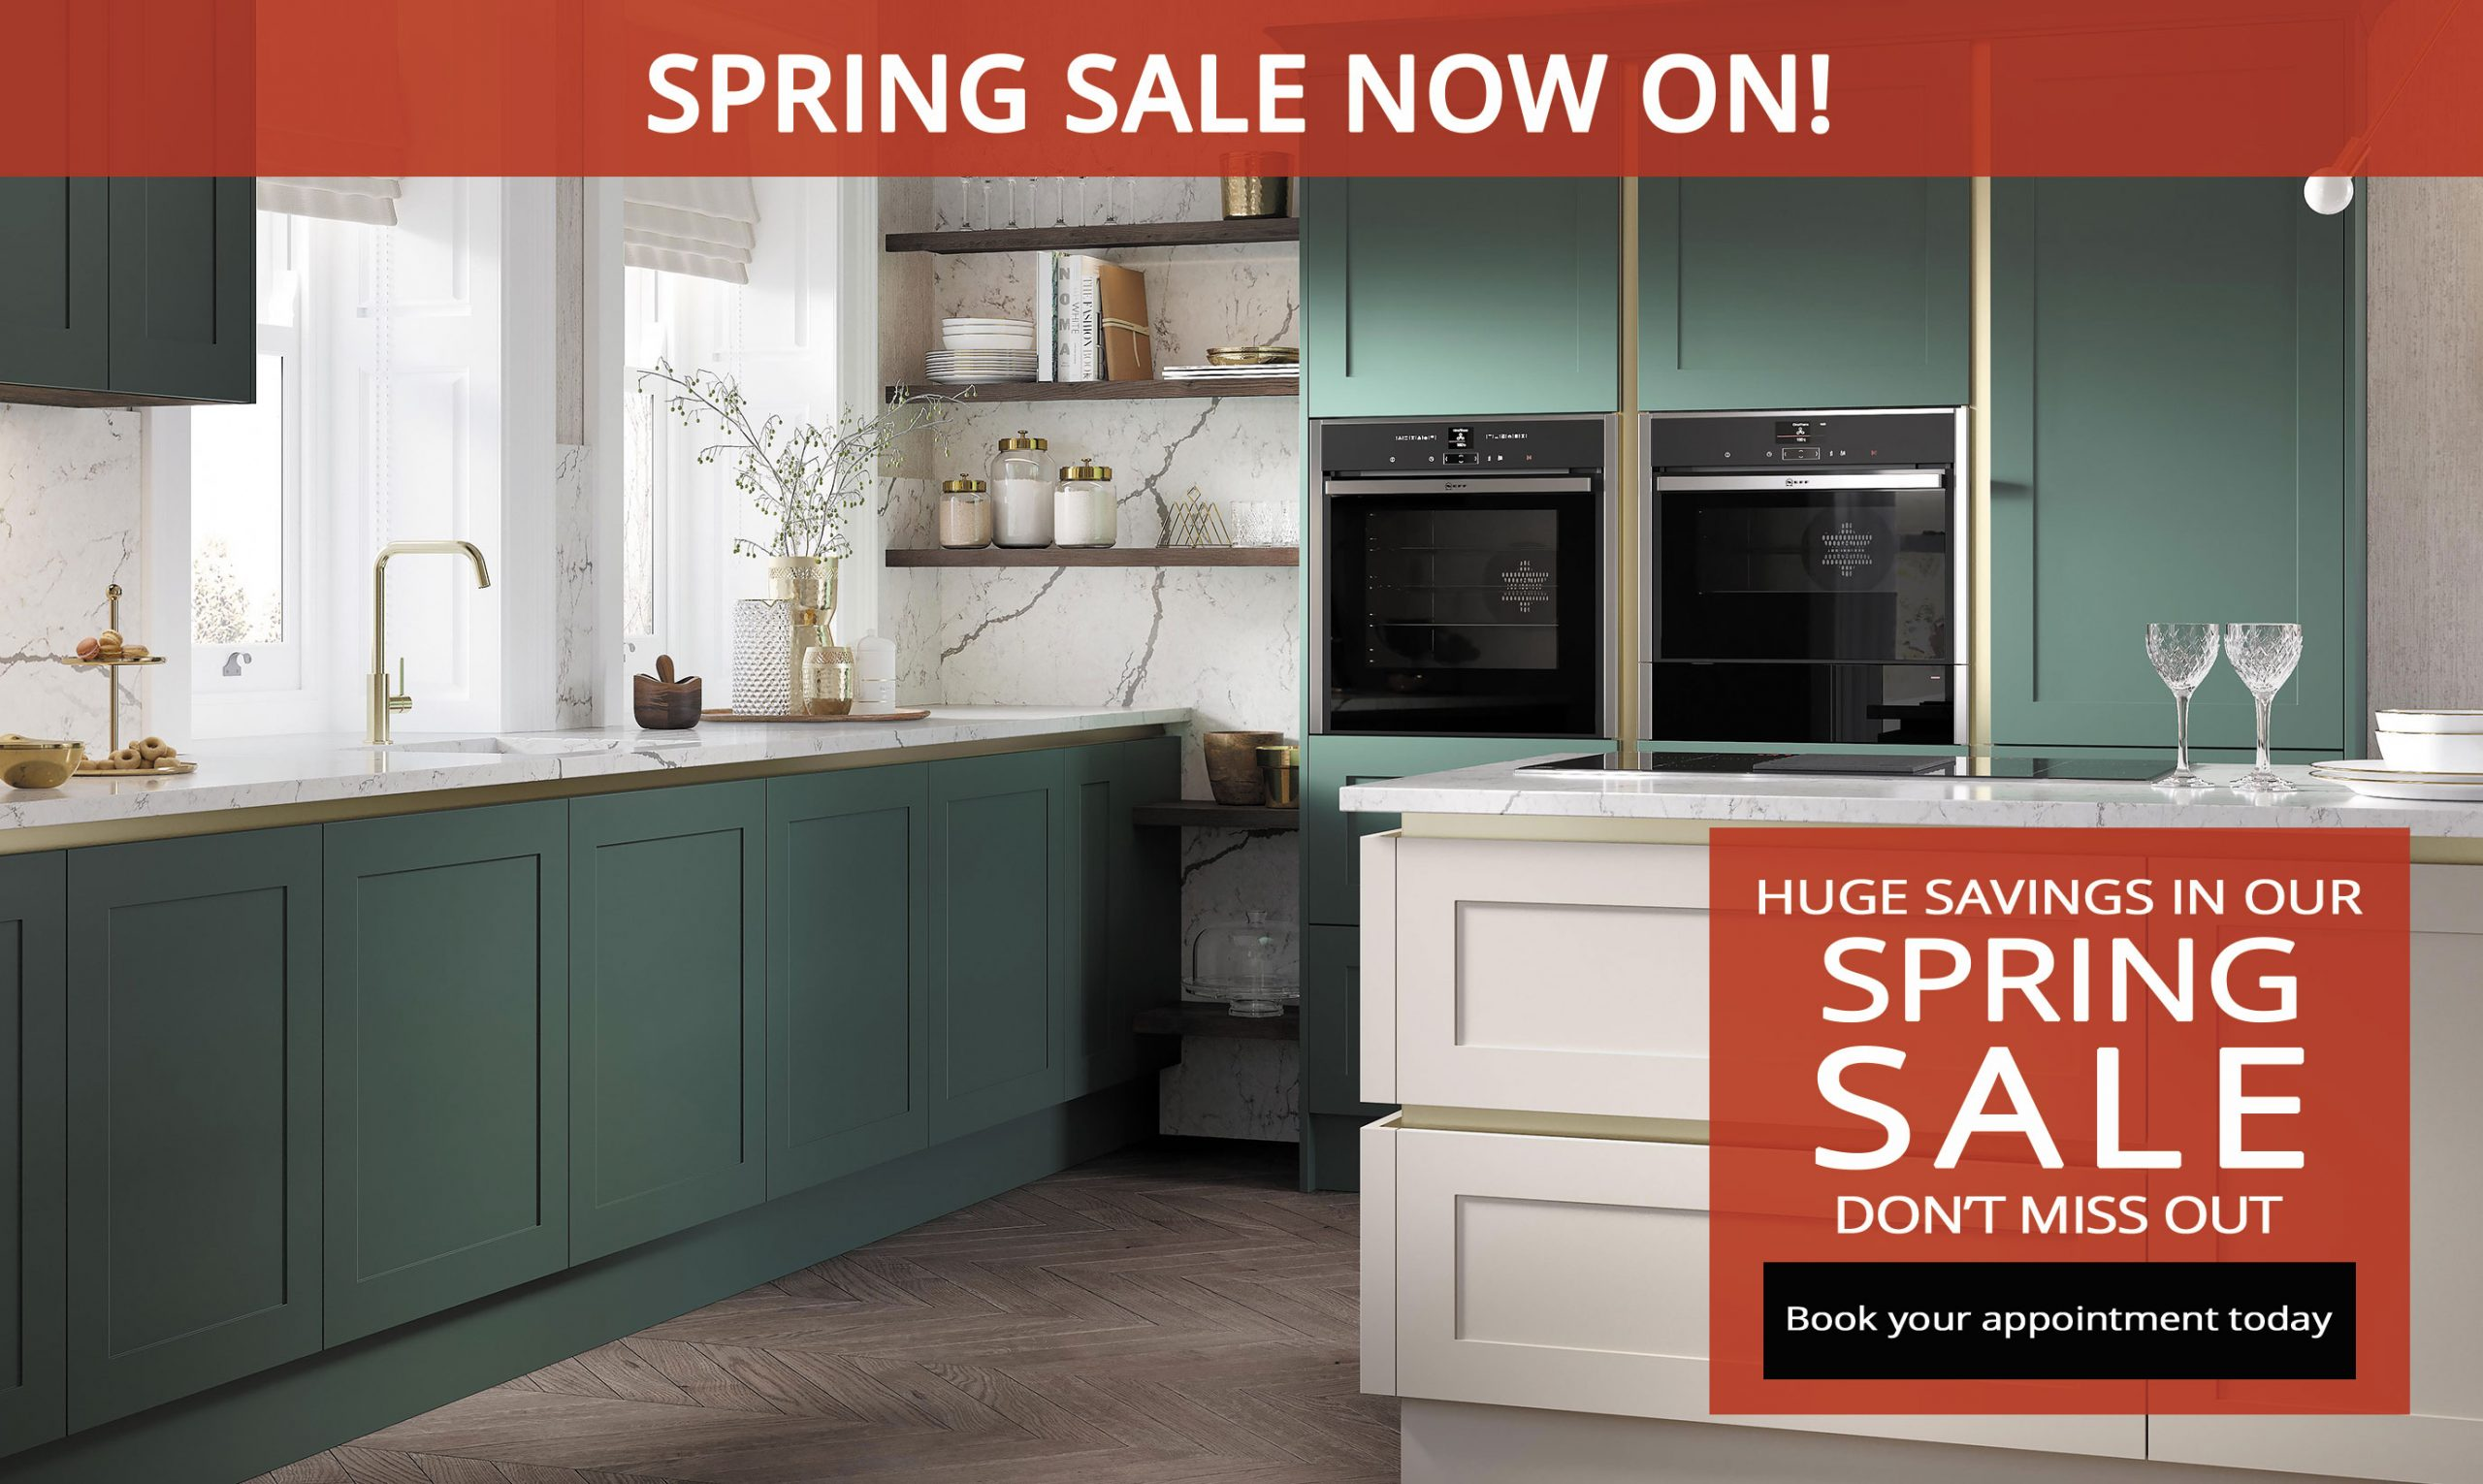 Spring Kitchen Sale at Kitchen Emporium